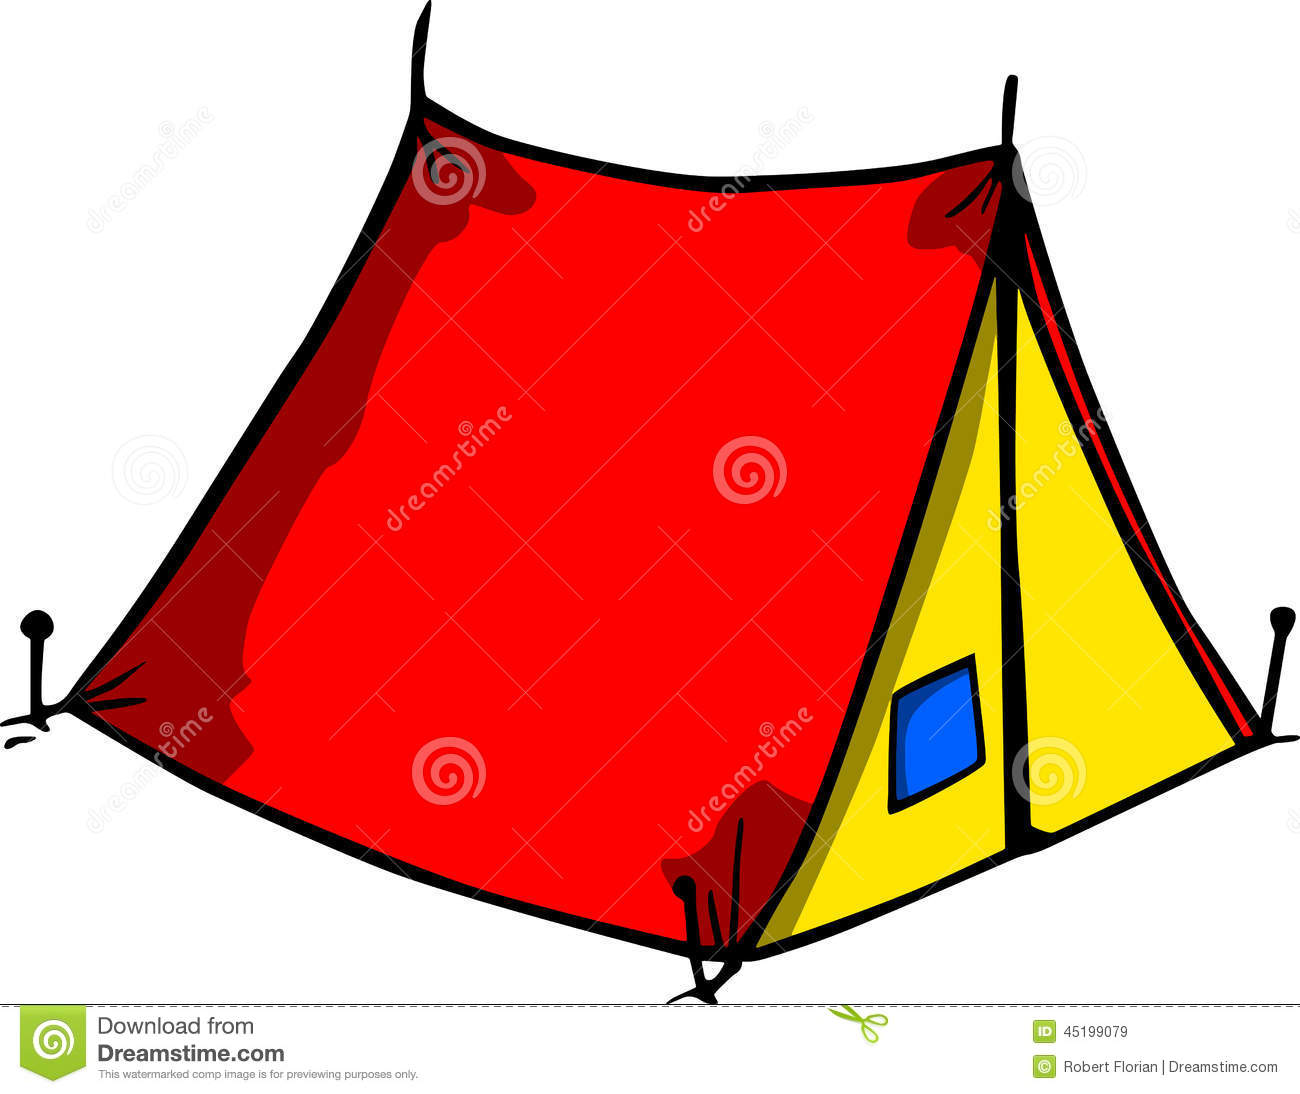 Tent stock vector. Image of mountaineering, entrance ...